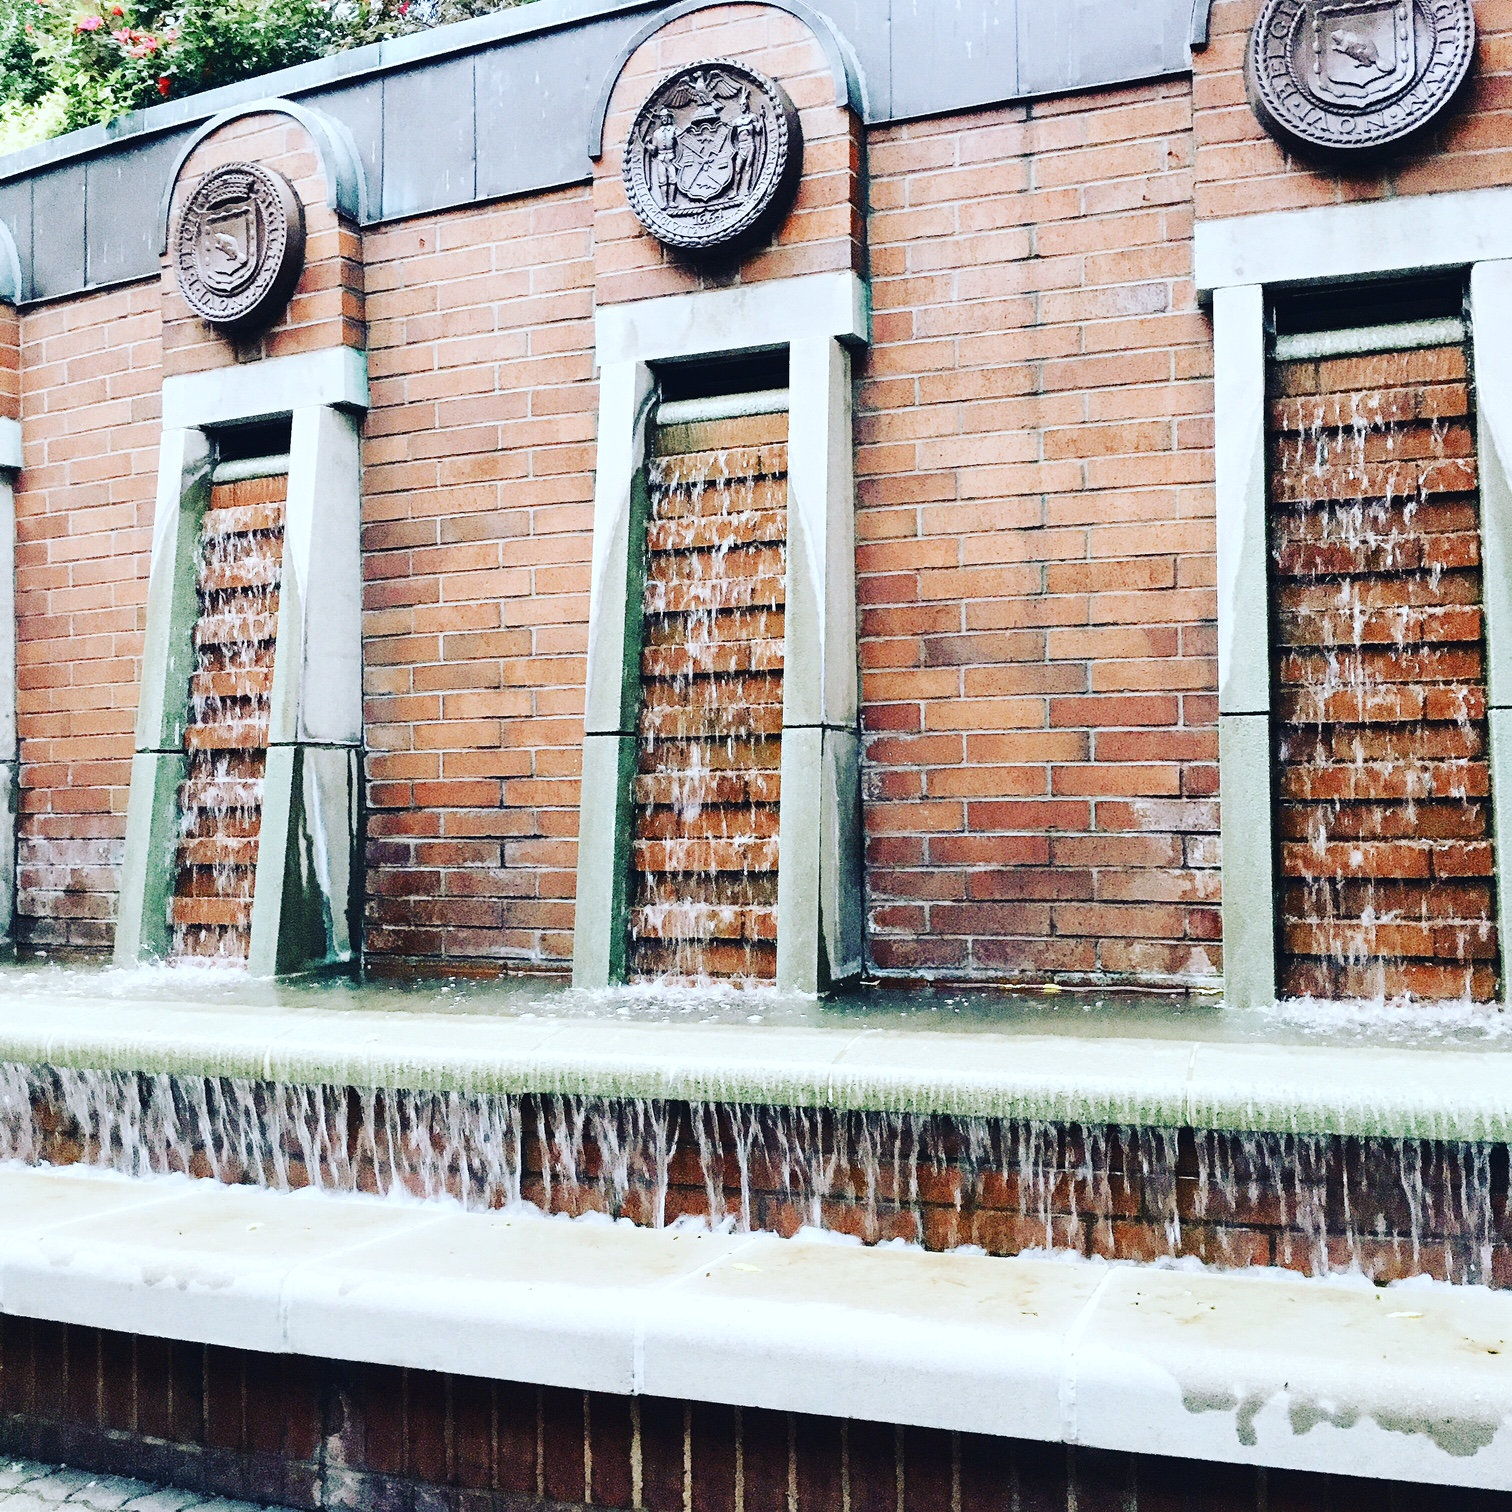 New York Fashion Week Diary : Fountain in the Meatpacking District